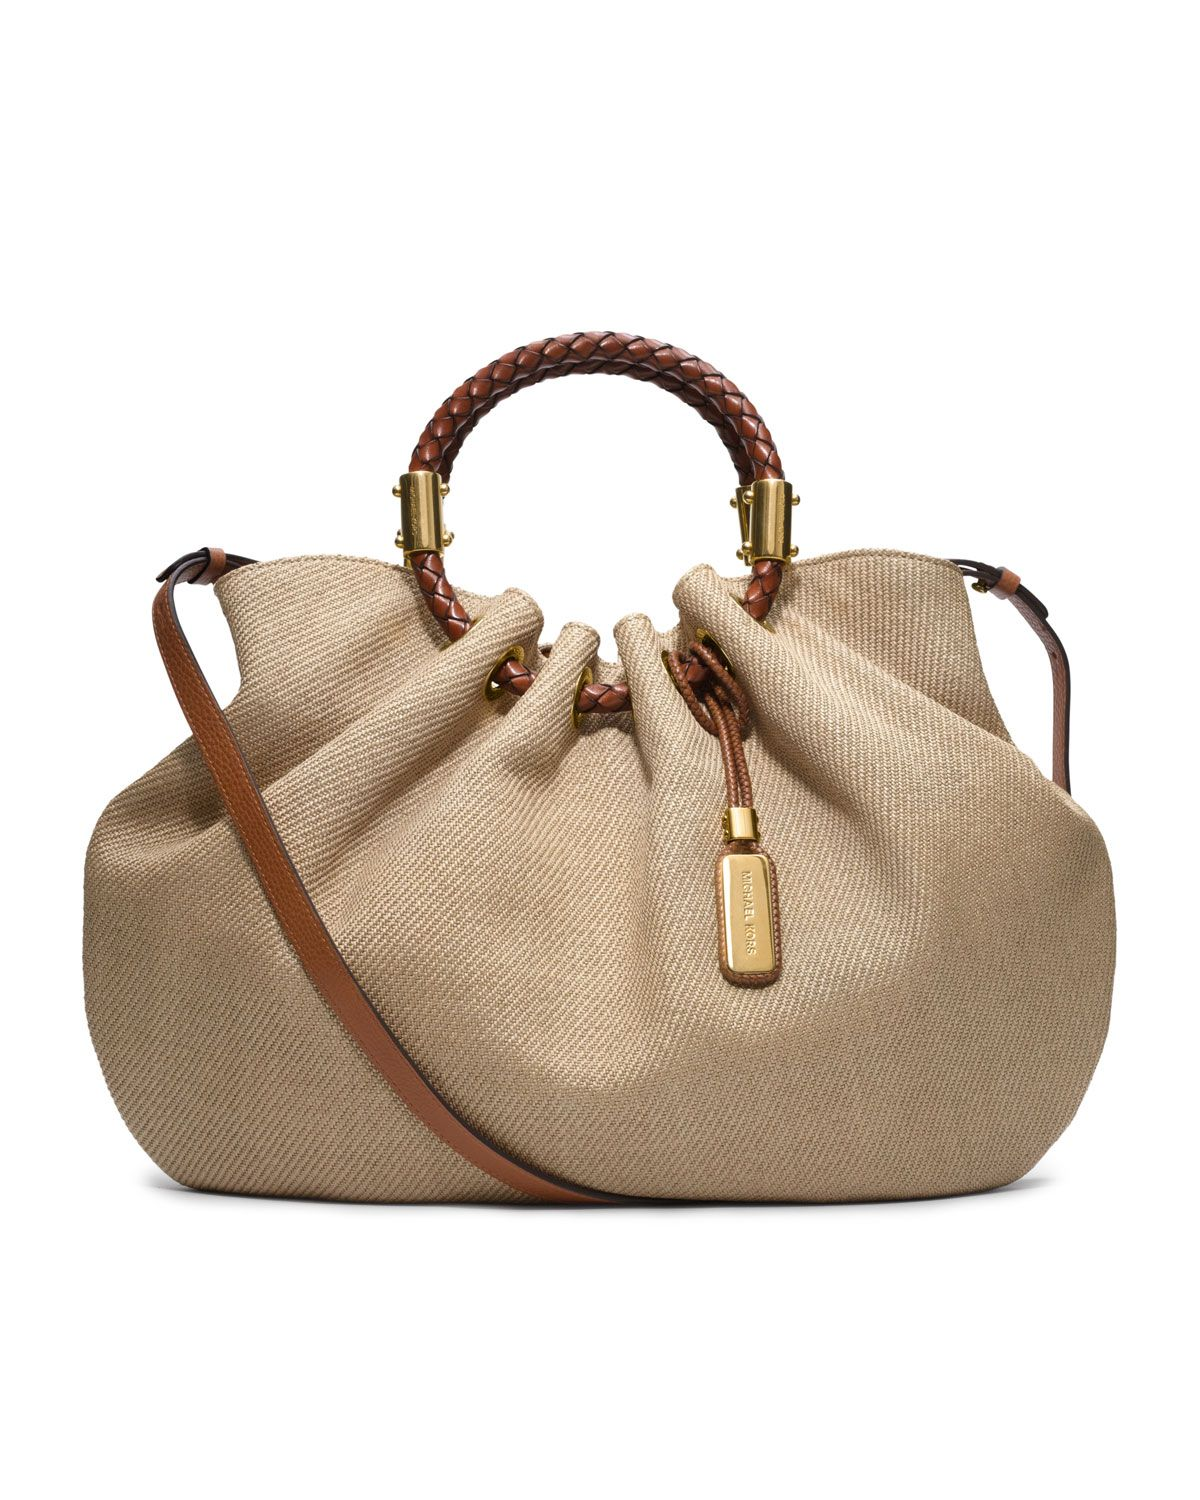 024428d7632aa9 Michael Kors Skorpios Canvas Ring Tote - Neiman Marcus Both lovely and  sophisticated, our Joan Vass pieces are ideal for your vacation!